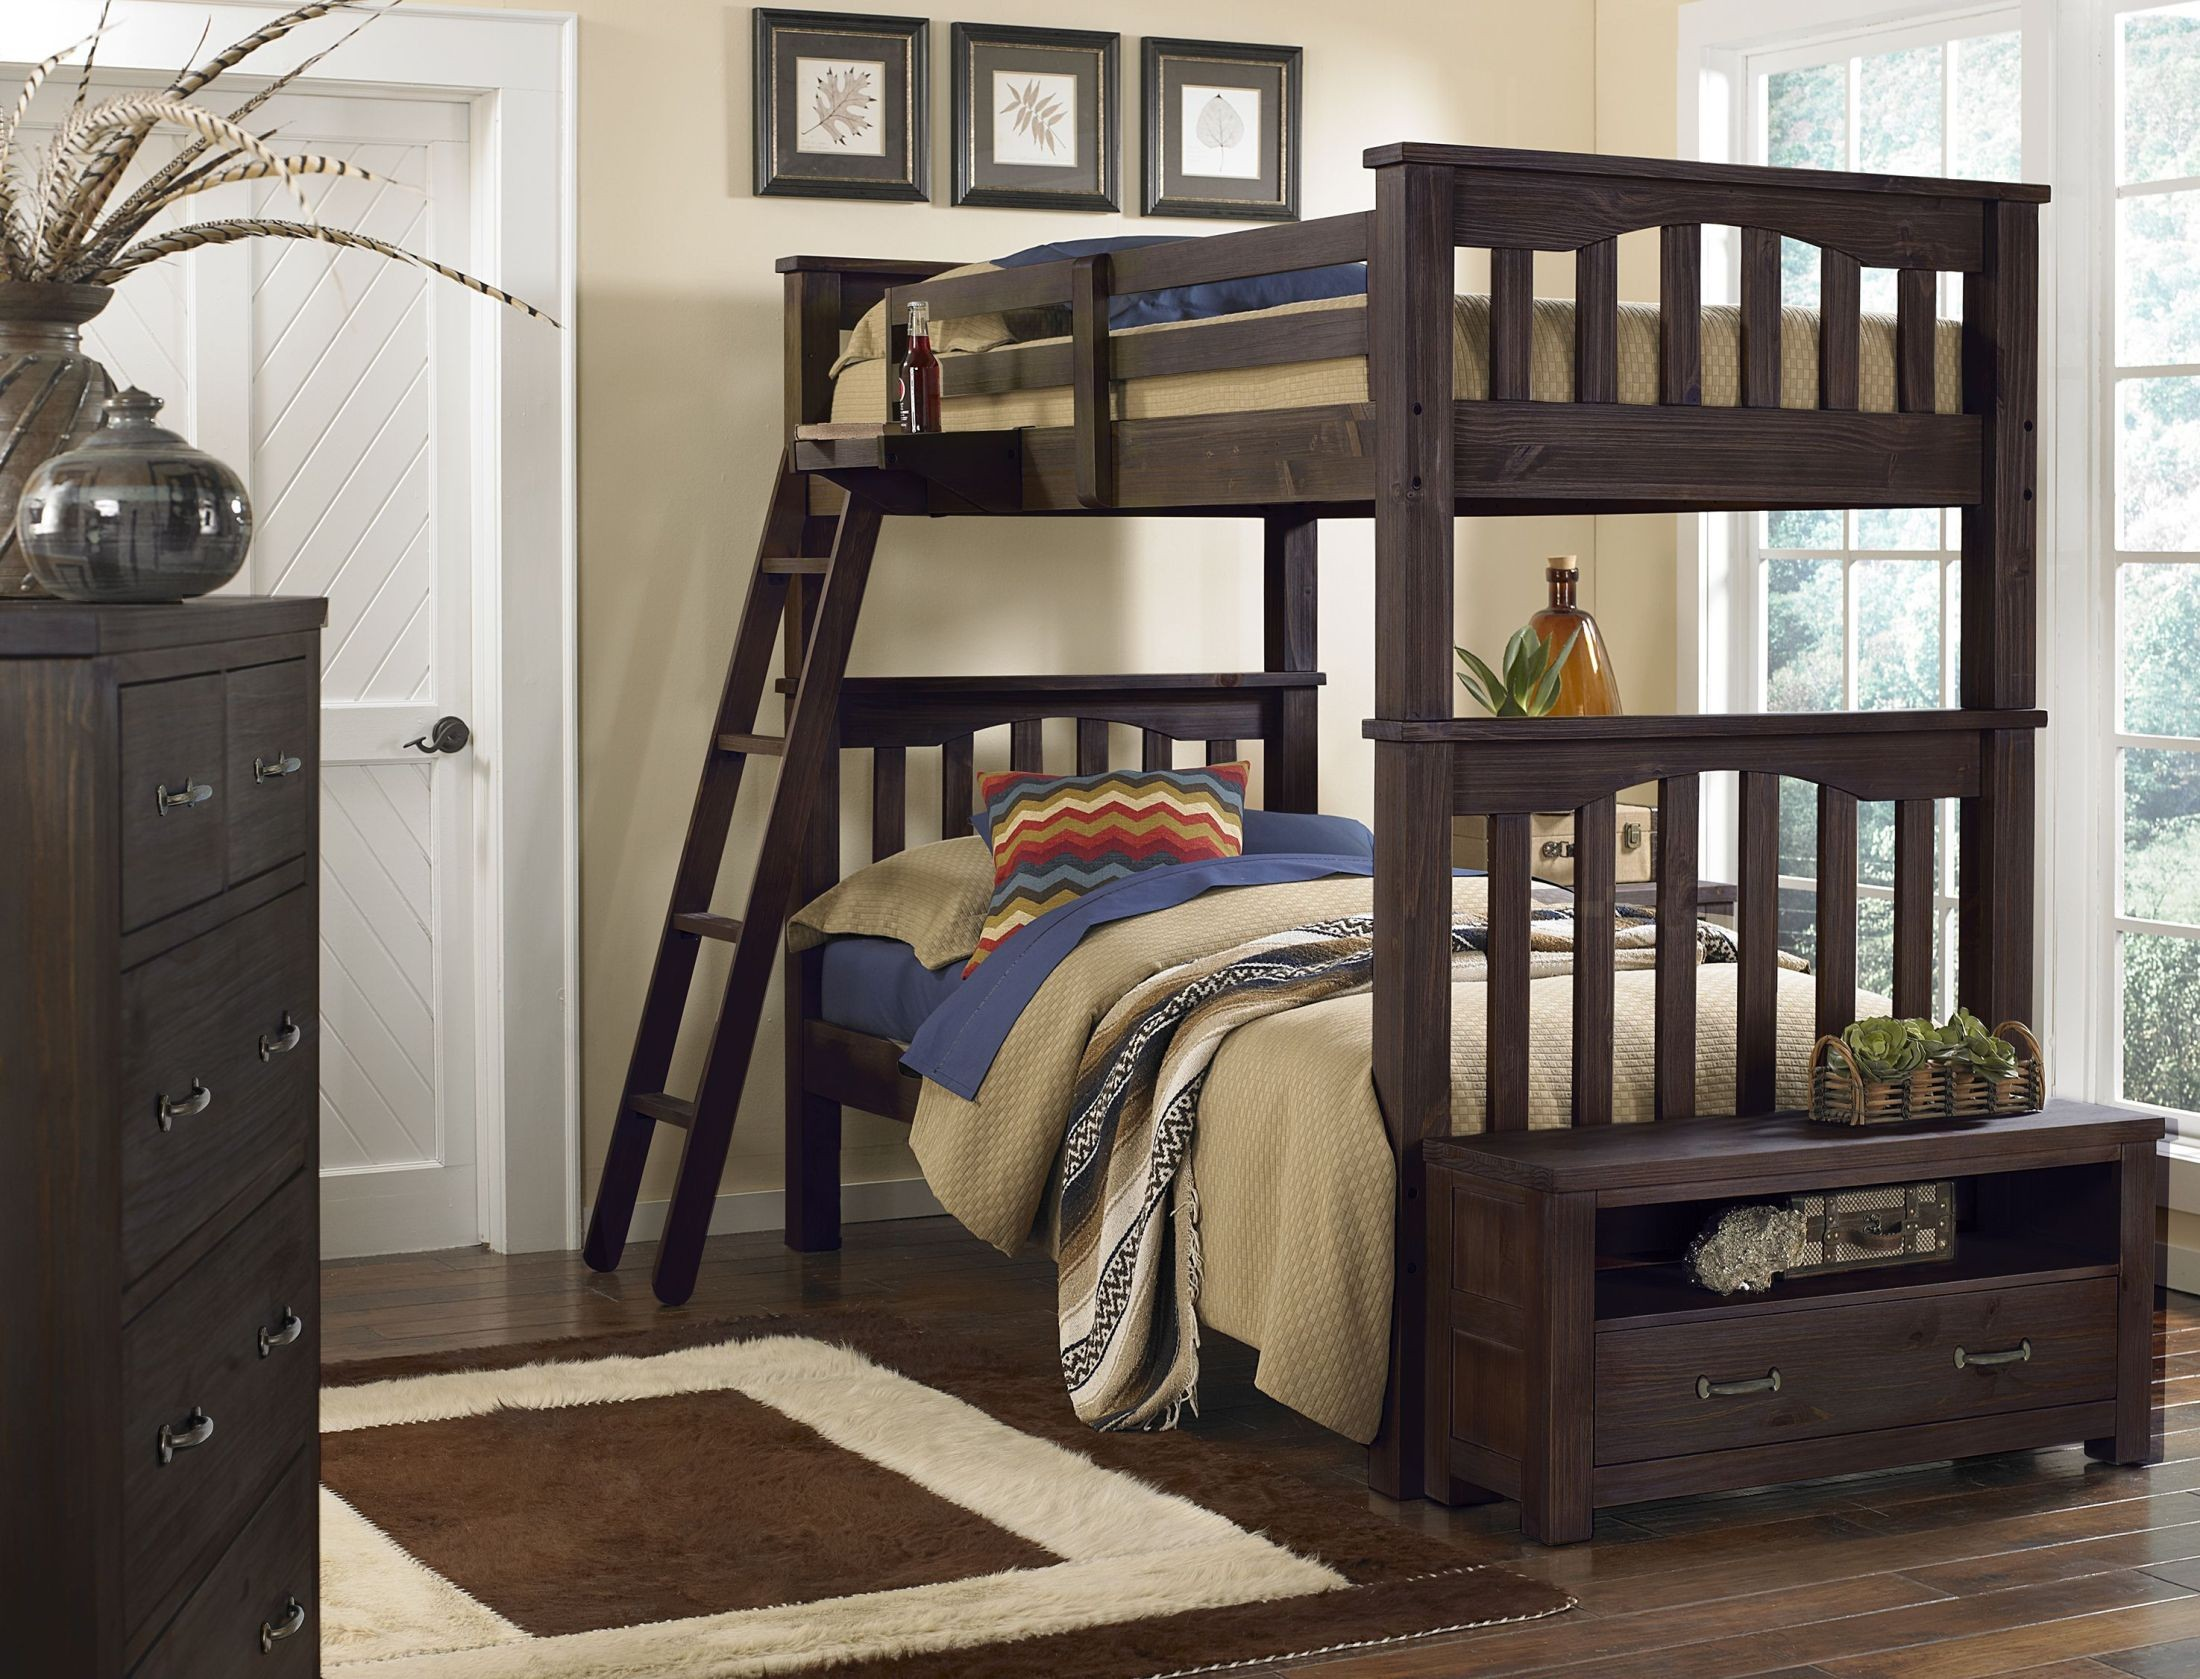 Espresso Twin Bunk Beds ~ Highlands harper espresso twin over bunk bed n